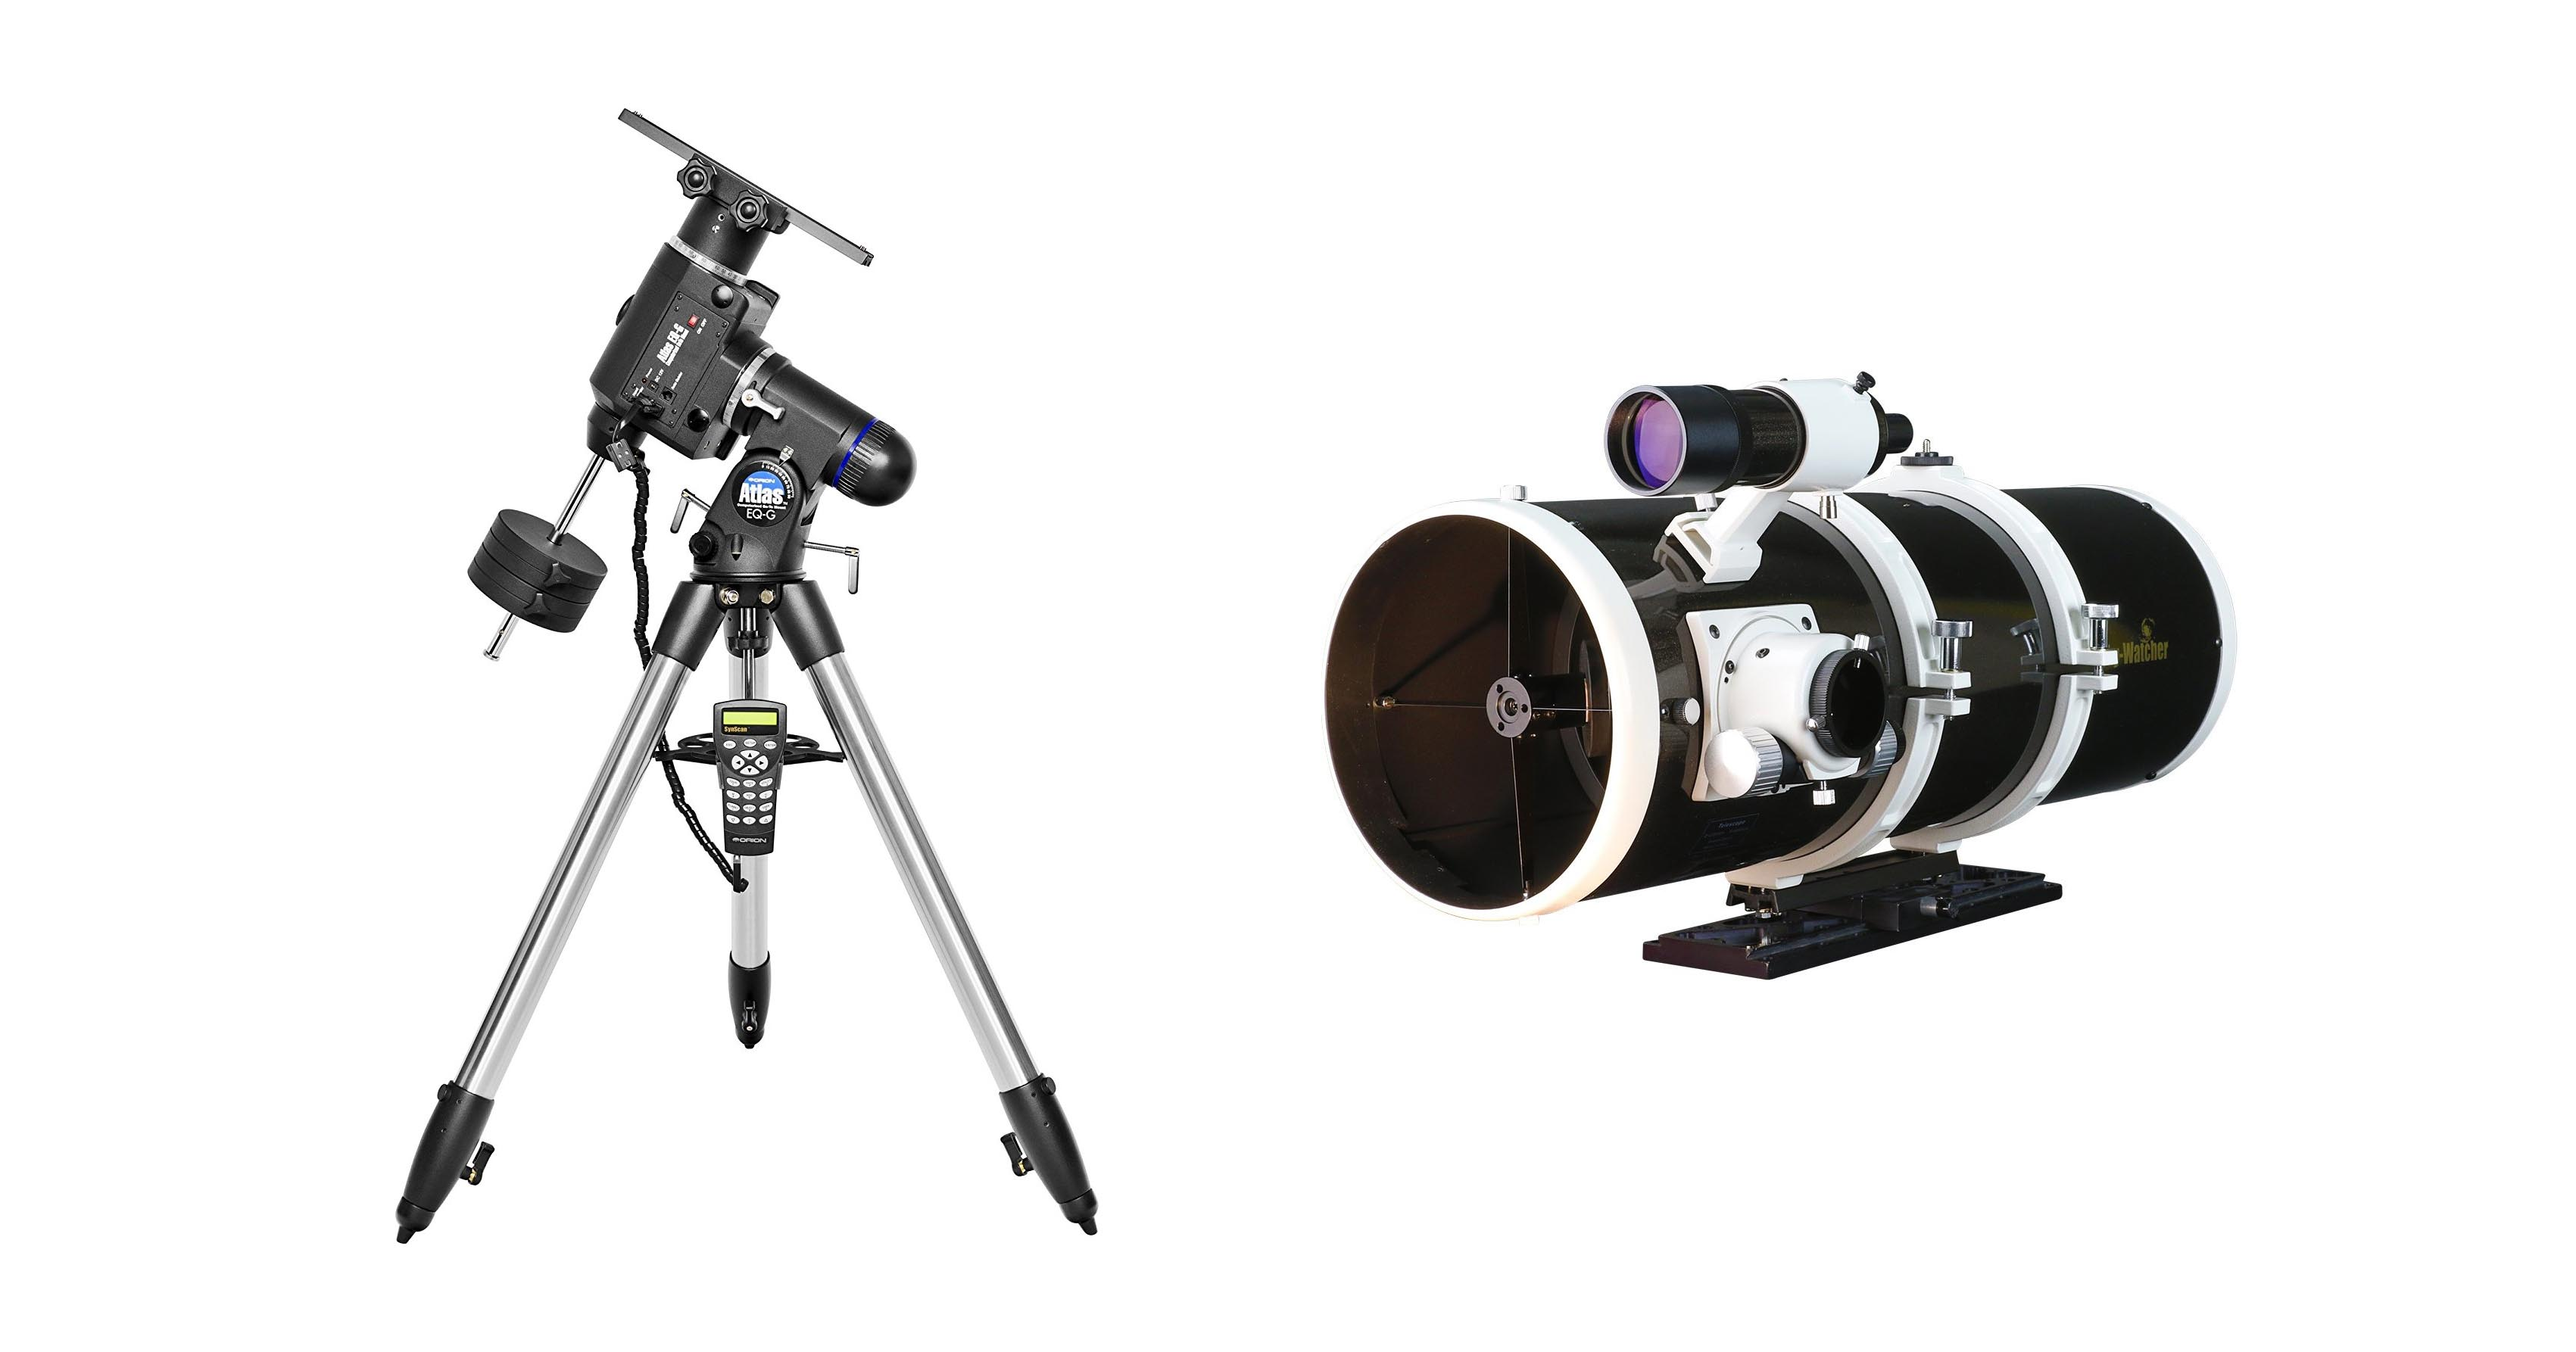 Beginner astrophotography telescope – The Best choice